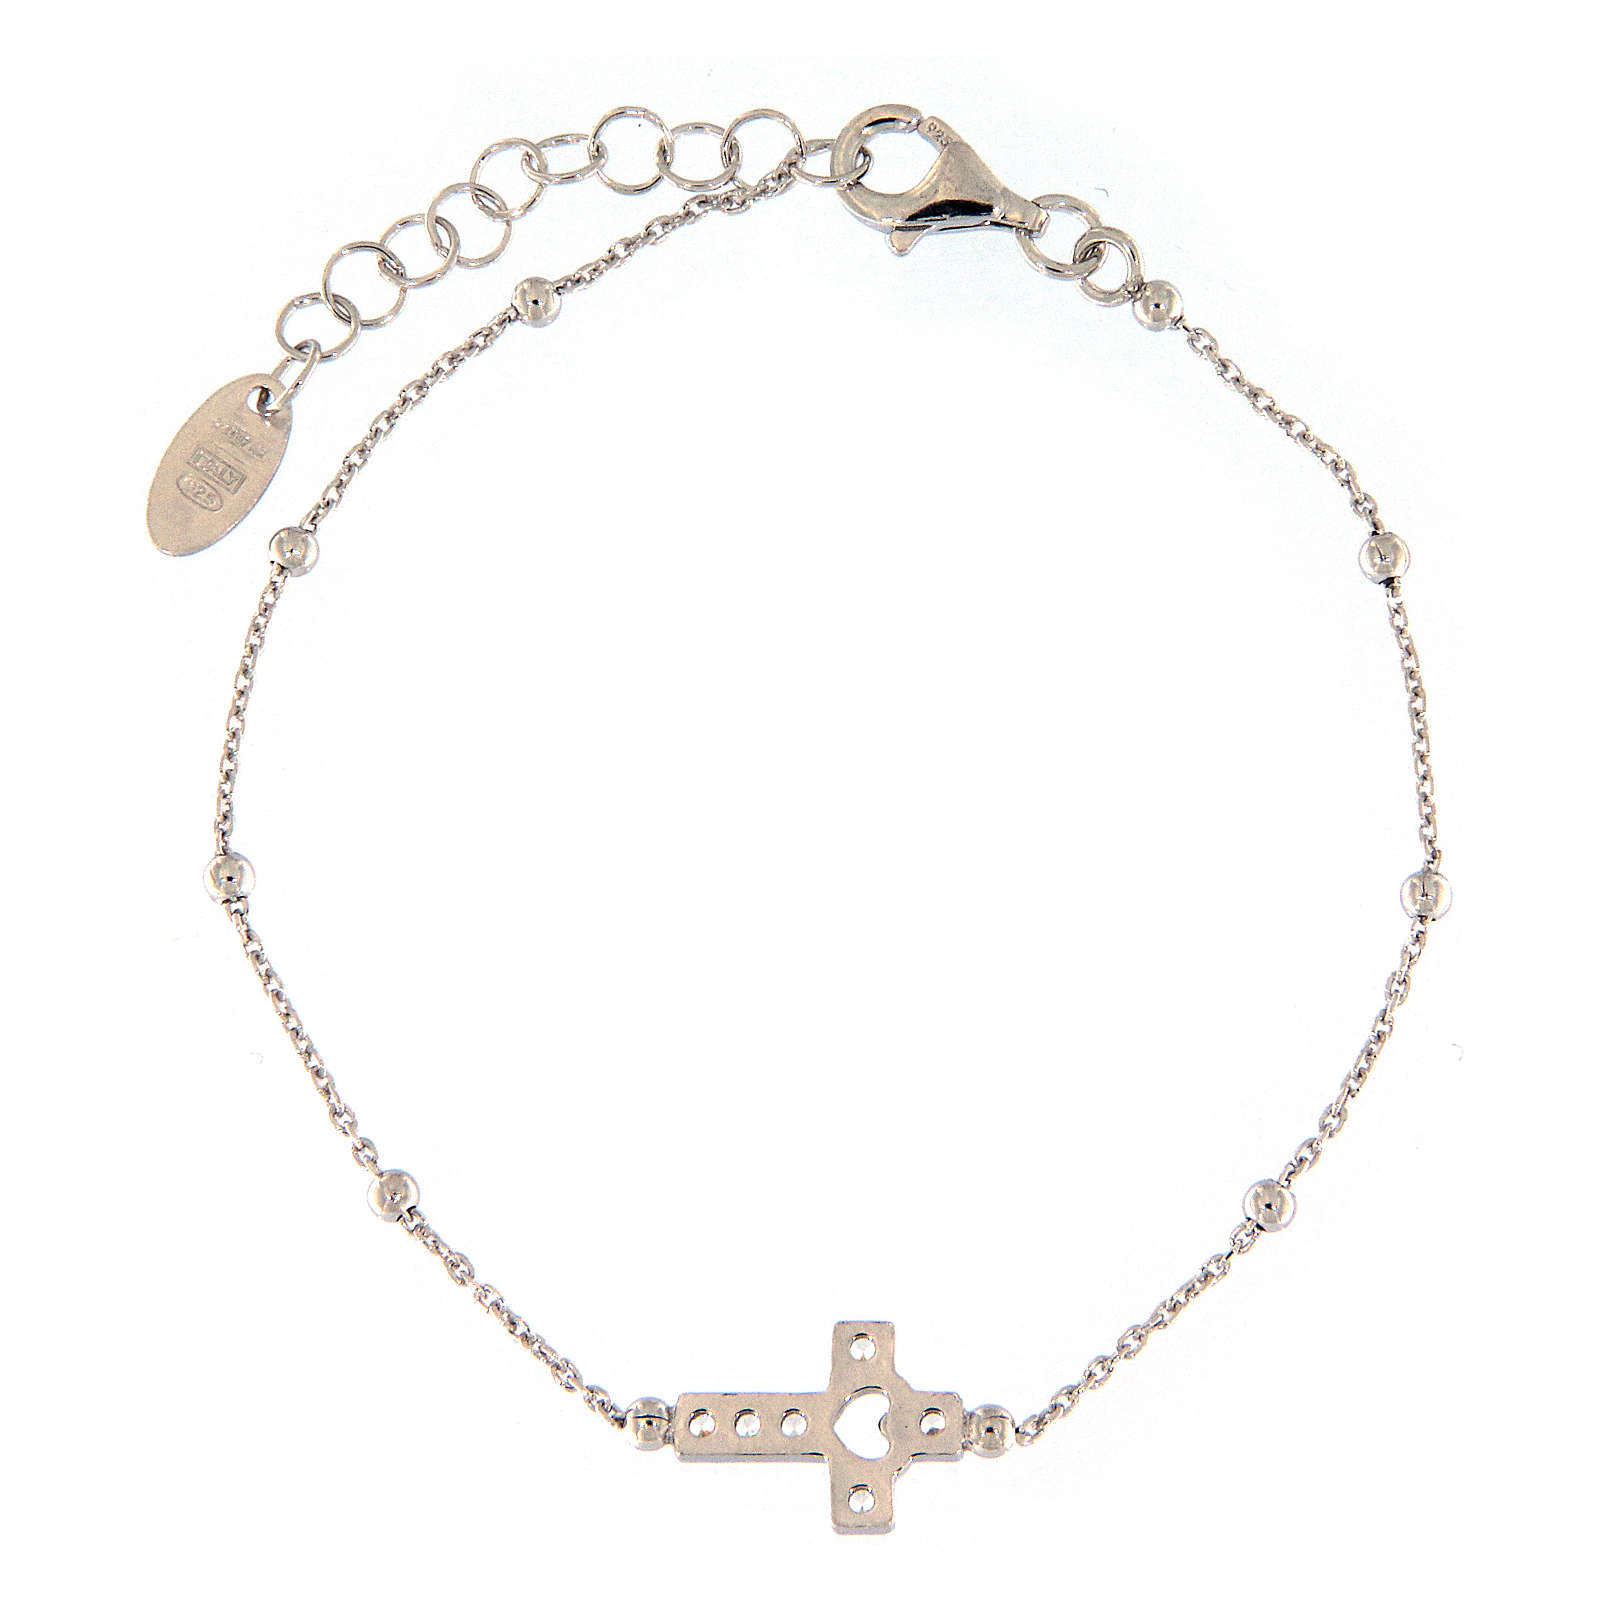 AMEN bracelet in rhodium-plated 925 silver with white rhinestones 4